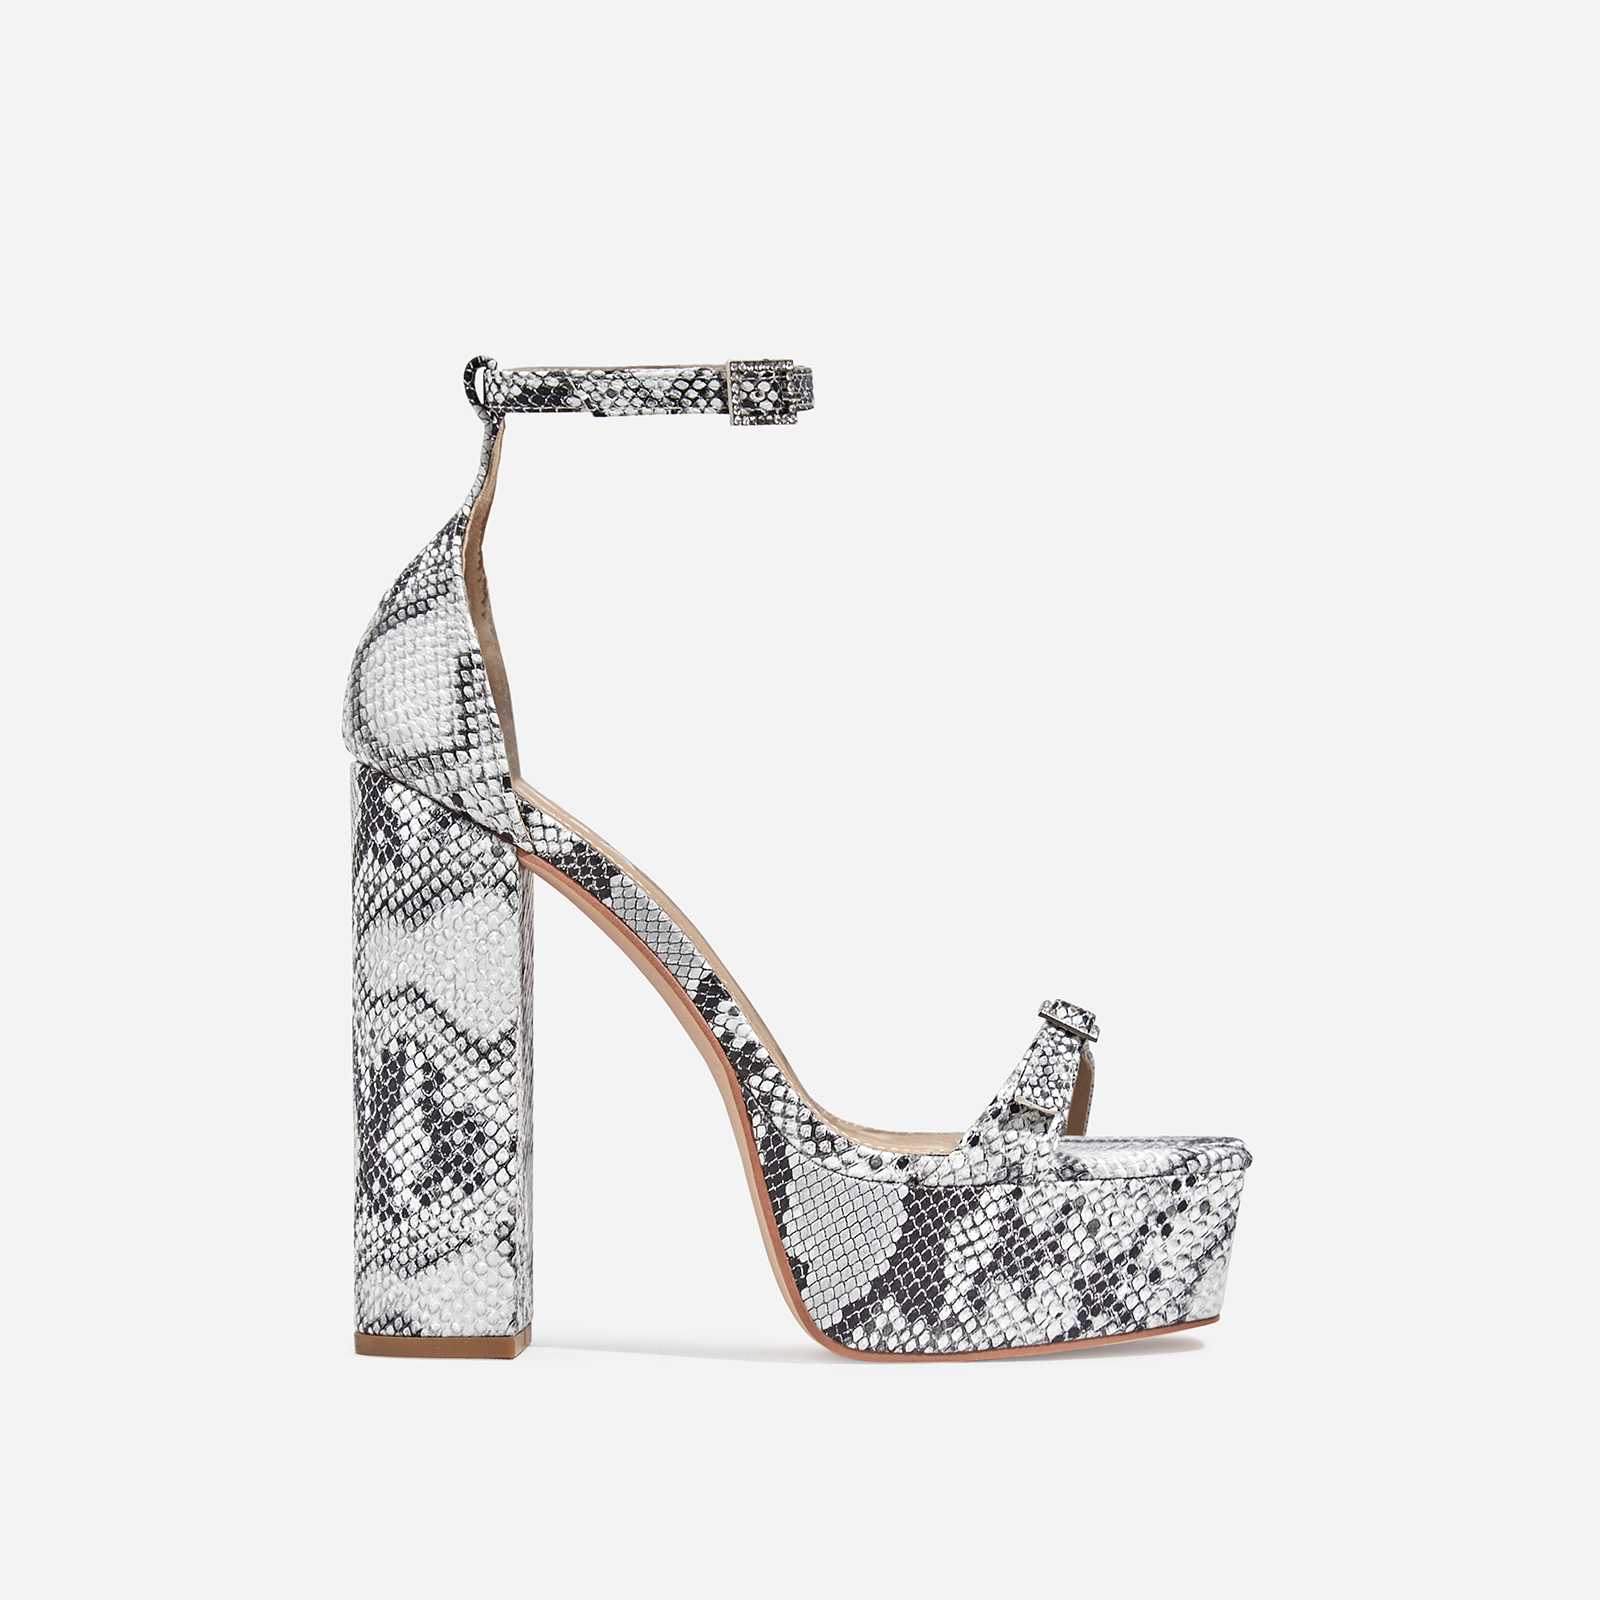 Milan Square Toe Barely There Platform Heel In Grey Snake Print Faux Leather